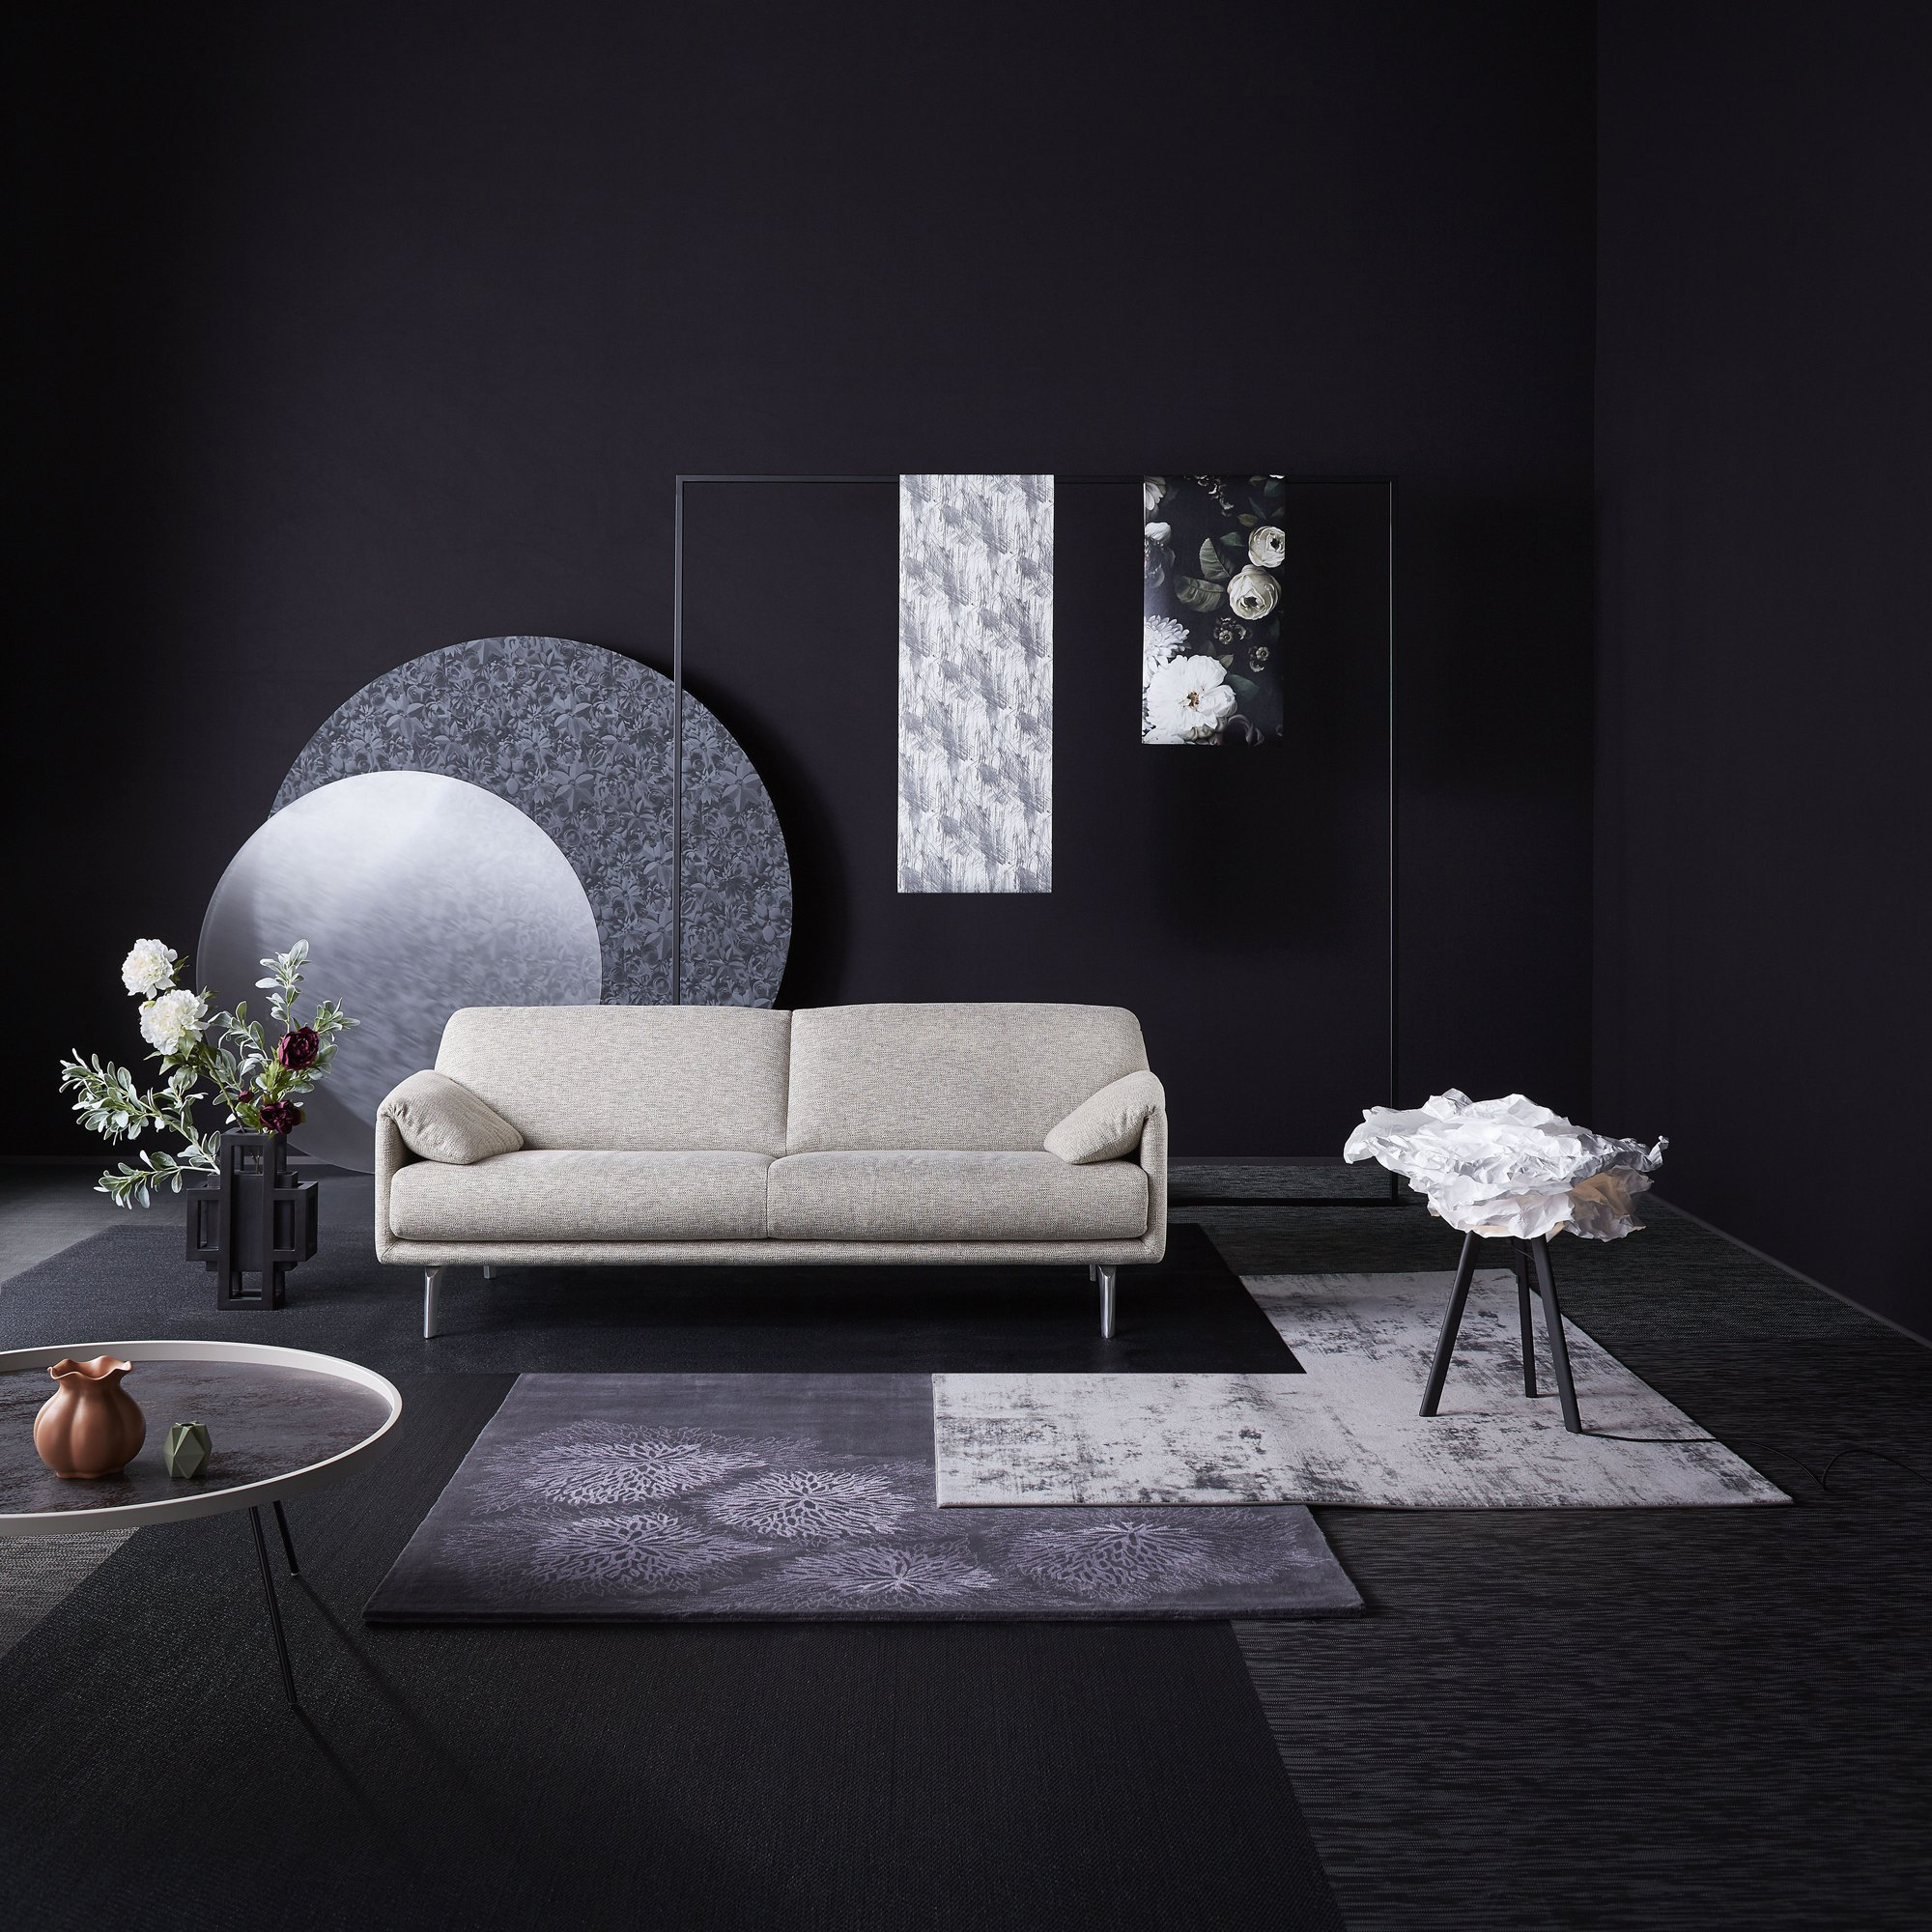 Inspiration-furniture-monochrome